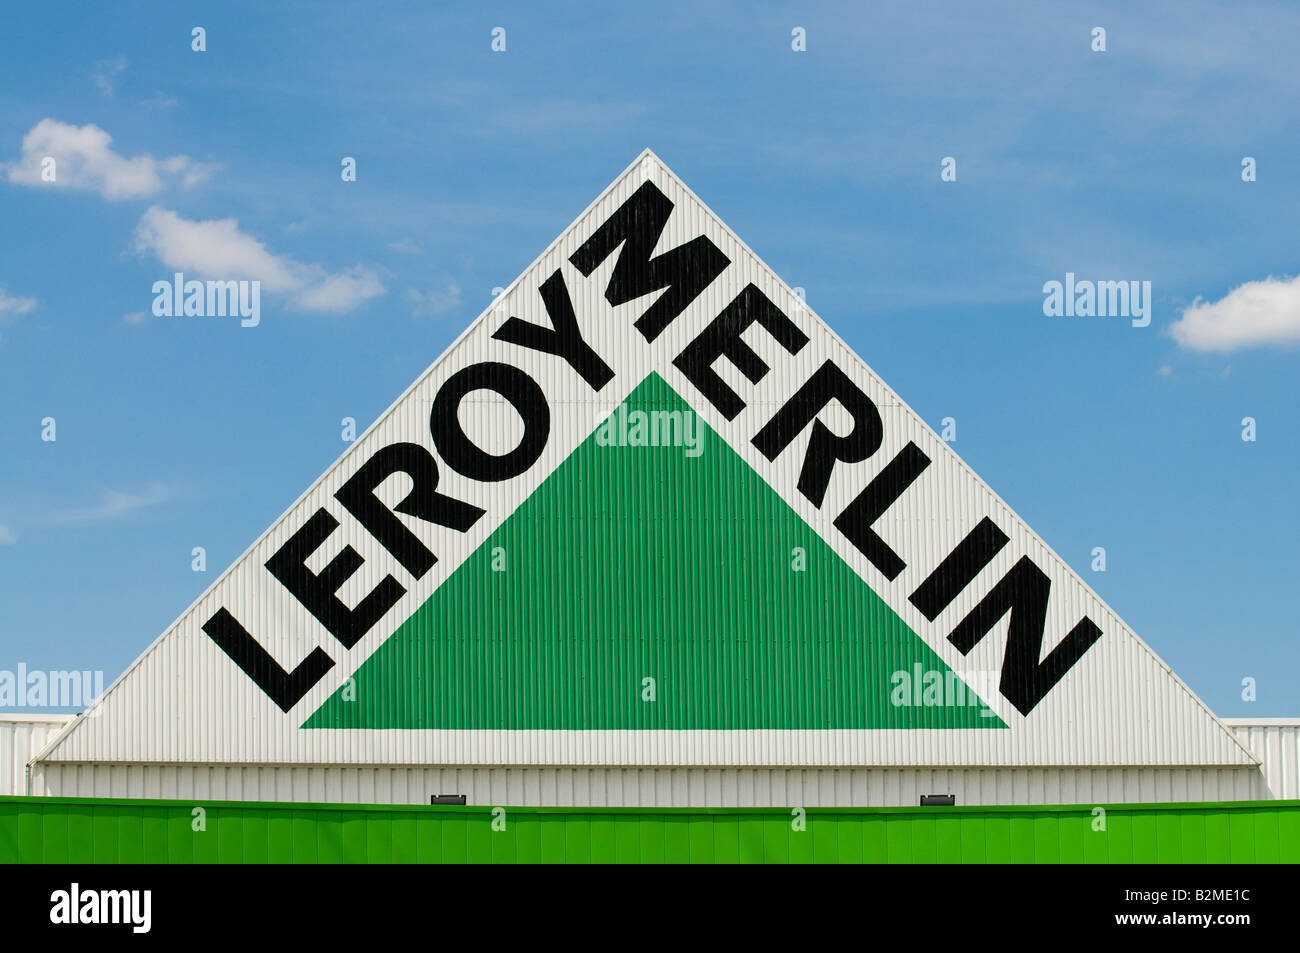 Leroy Merlin Magasin En France Leroy Merlin Store Photos Leroy Merlin Store Images Alamy